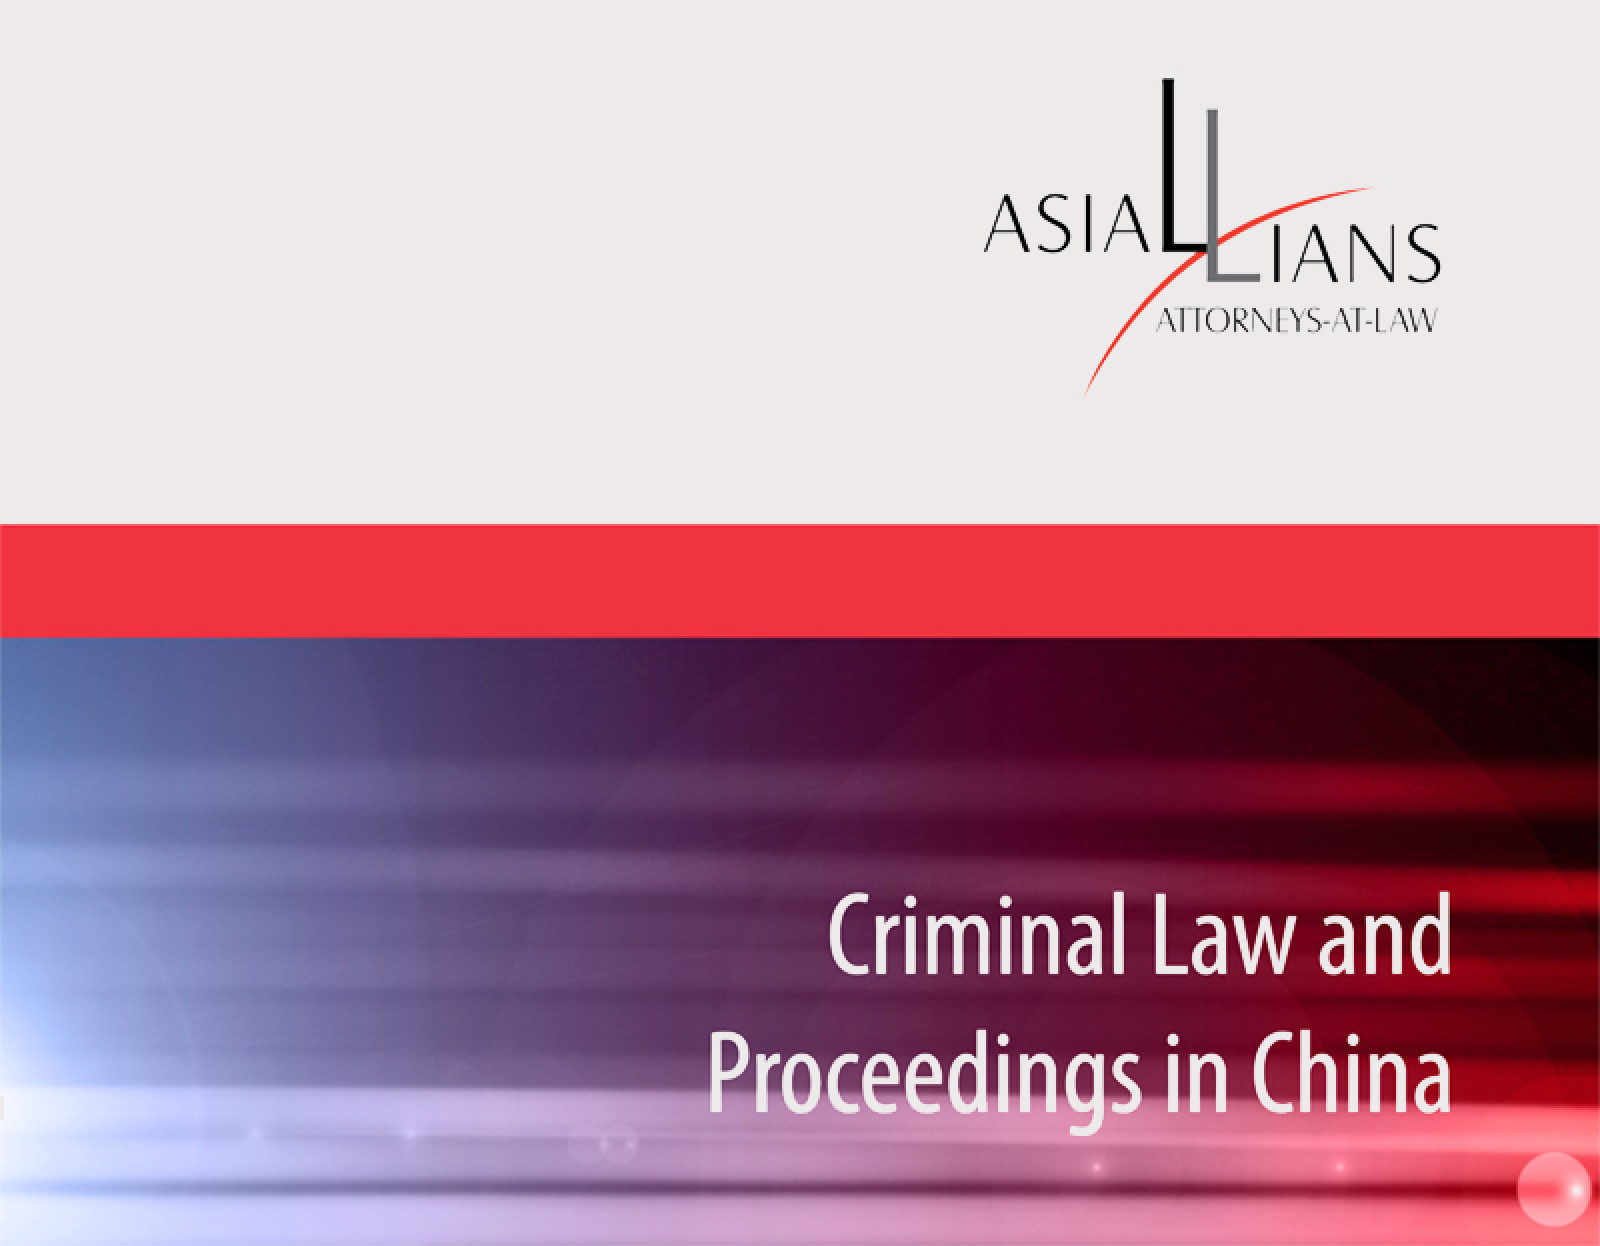 Criminal Law and Proceedings in China - Cercle K2